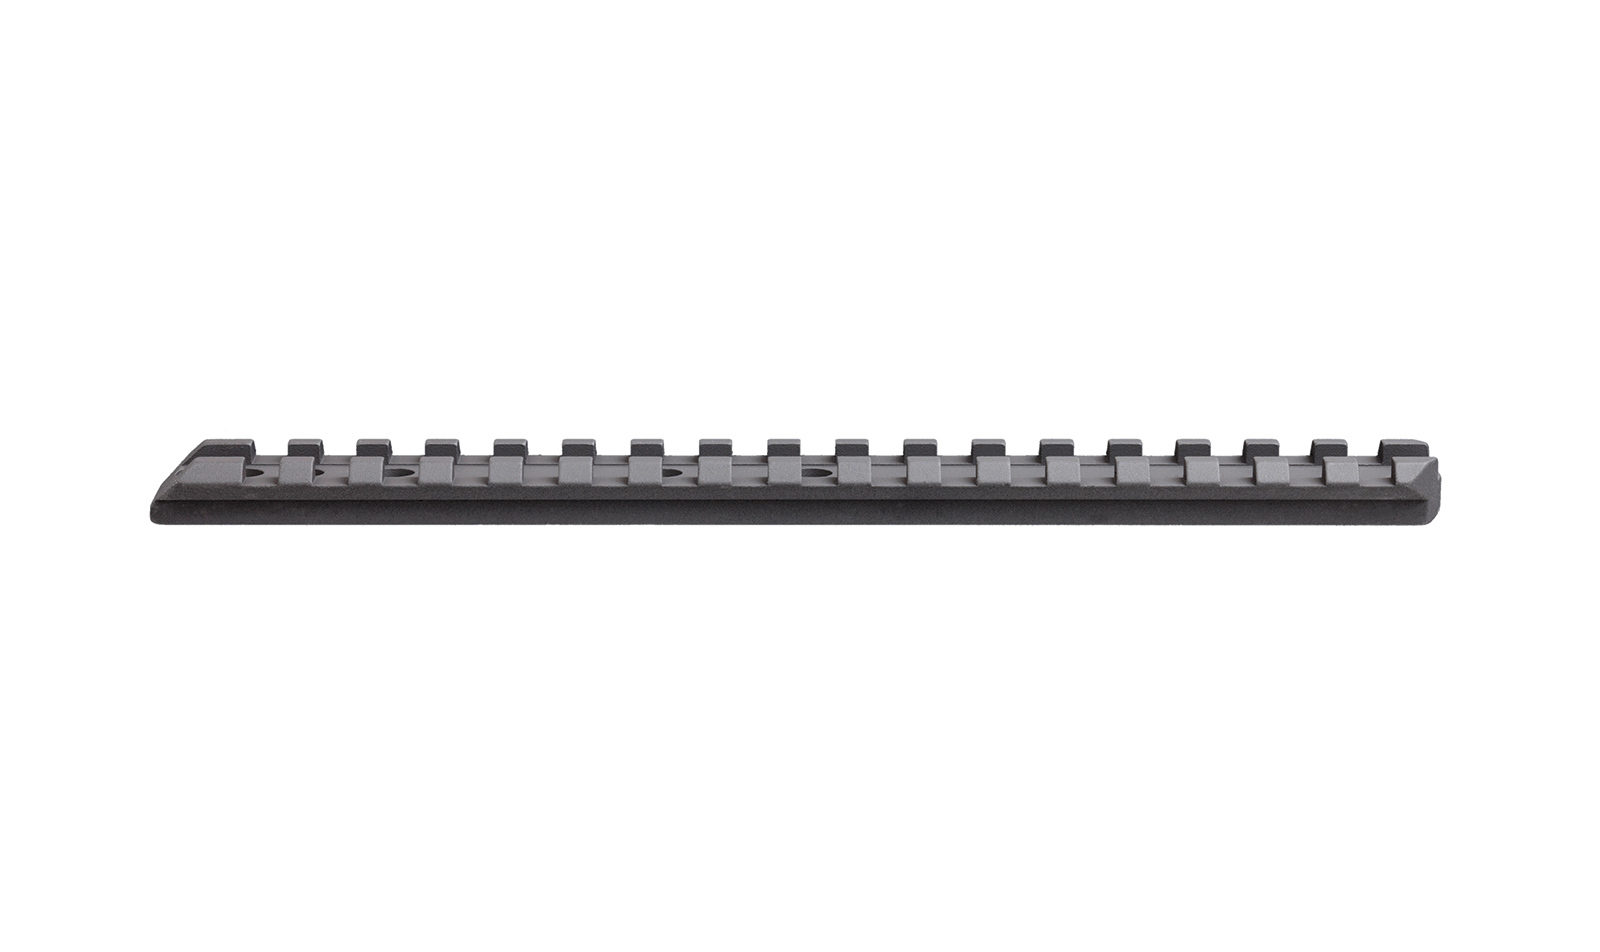 Full 1913 Picatinny Aluminum Rail for Benelli® Shotgun